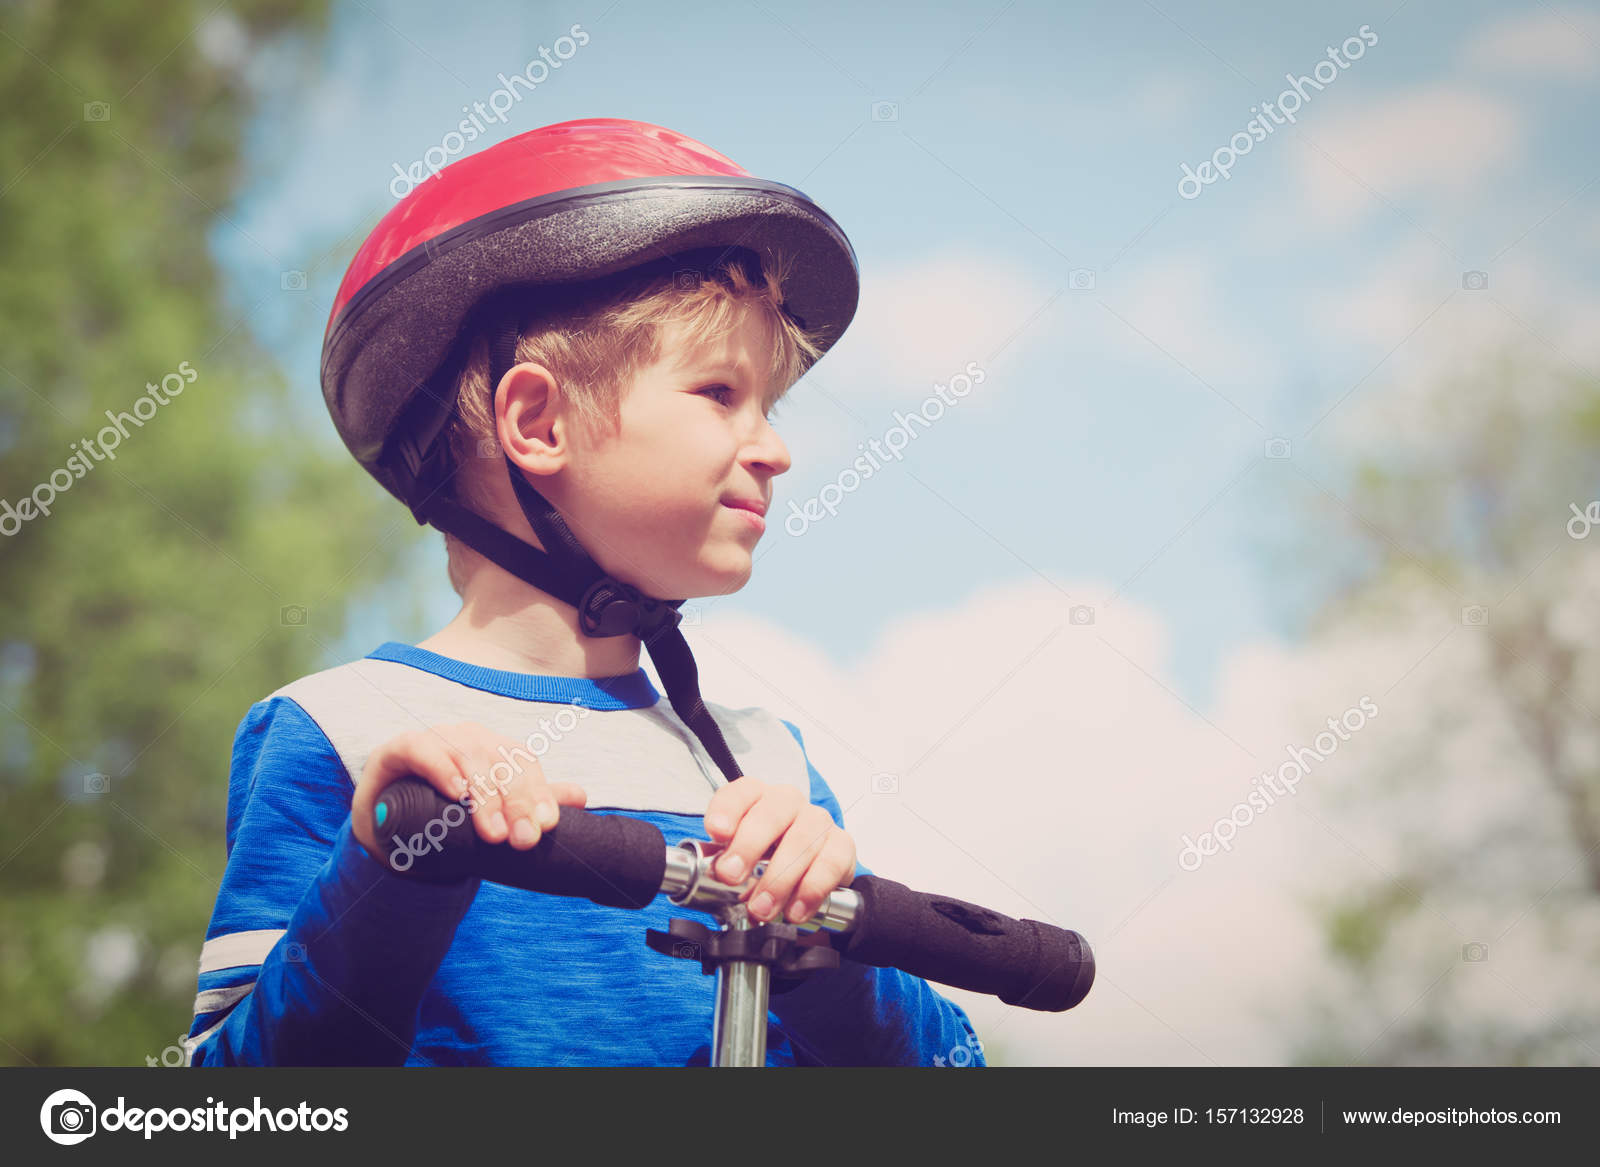 f05d385a2c28f Cute little boy with helmet riding scooter in nature — Photo by ...